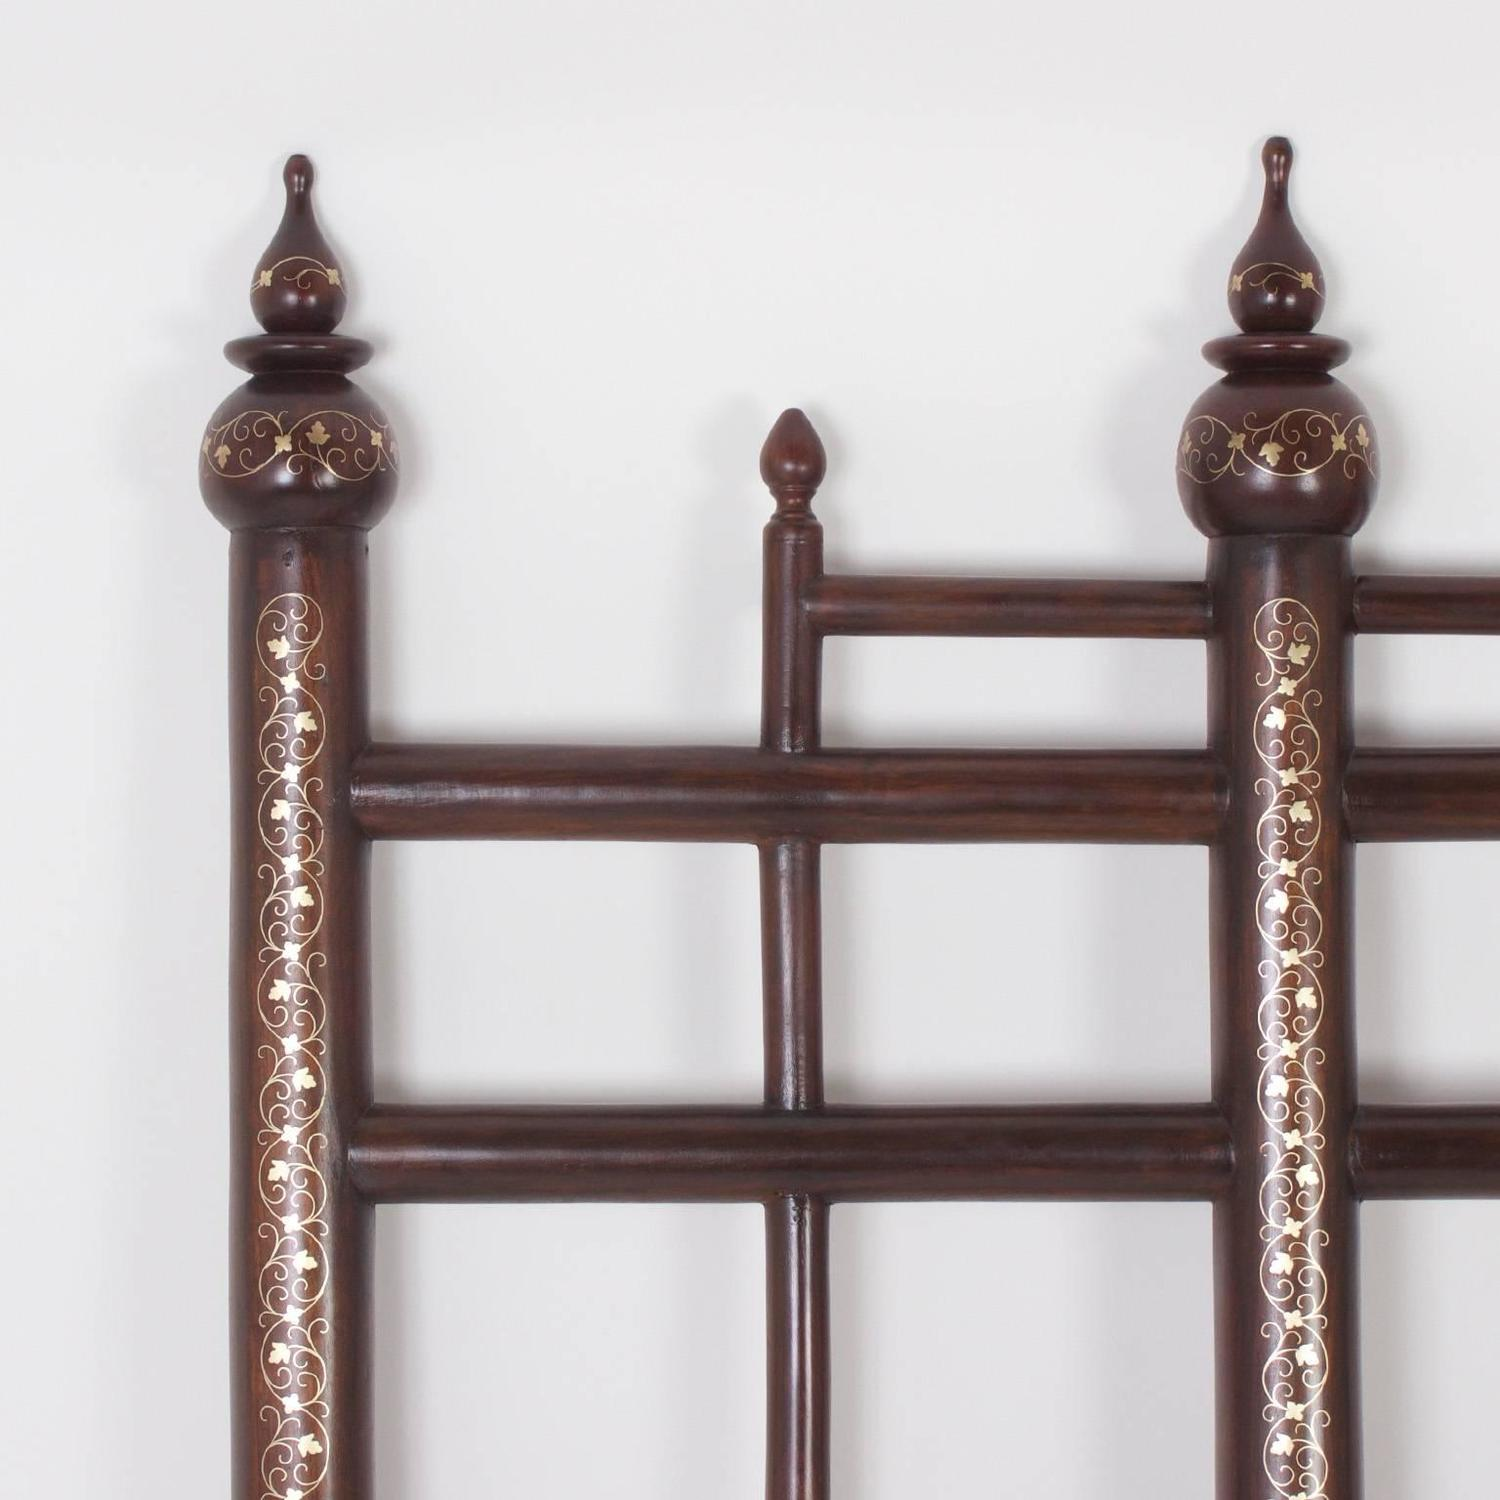 Vintage Queen Size Indian Headboard For Sale at 1stdibs